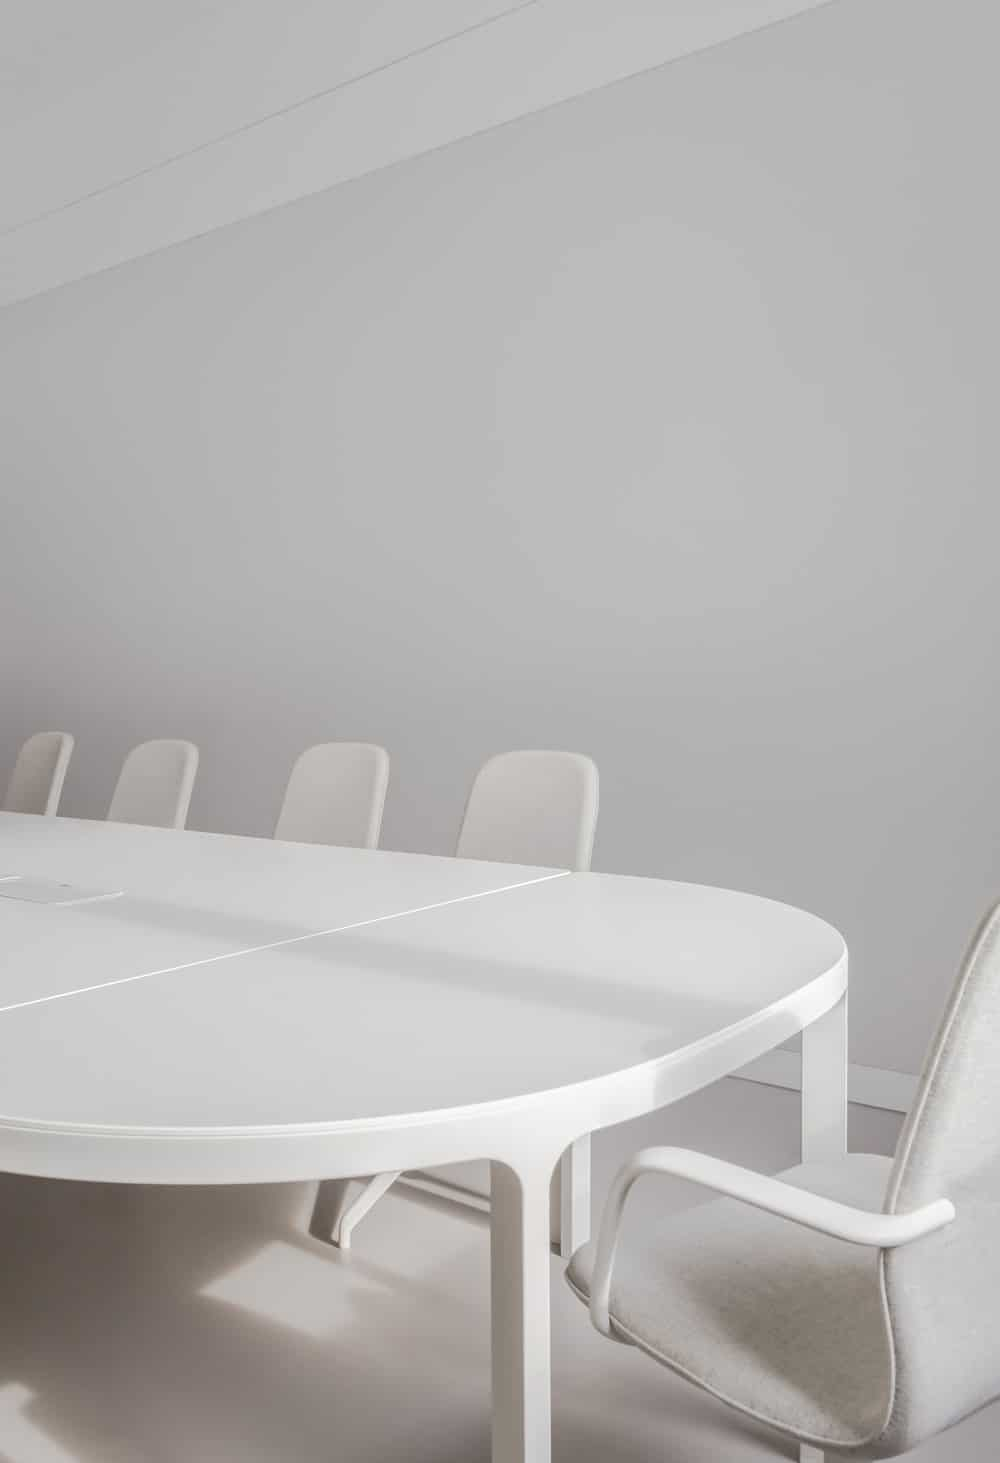 This is a close look at the modern conference table that pairs perfectly with the white office chairs, white walls and white ceiling.